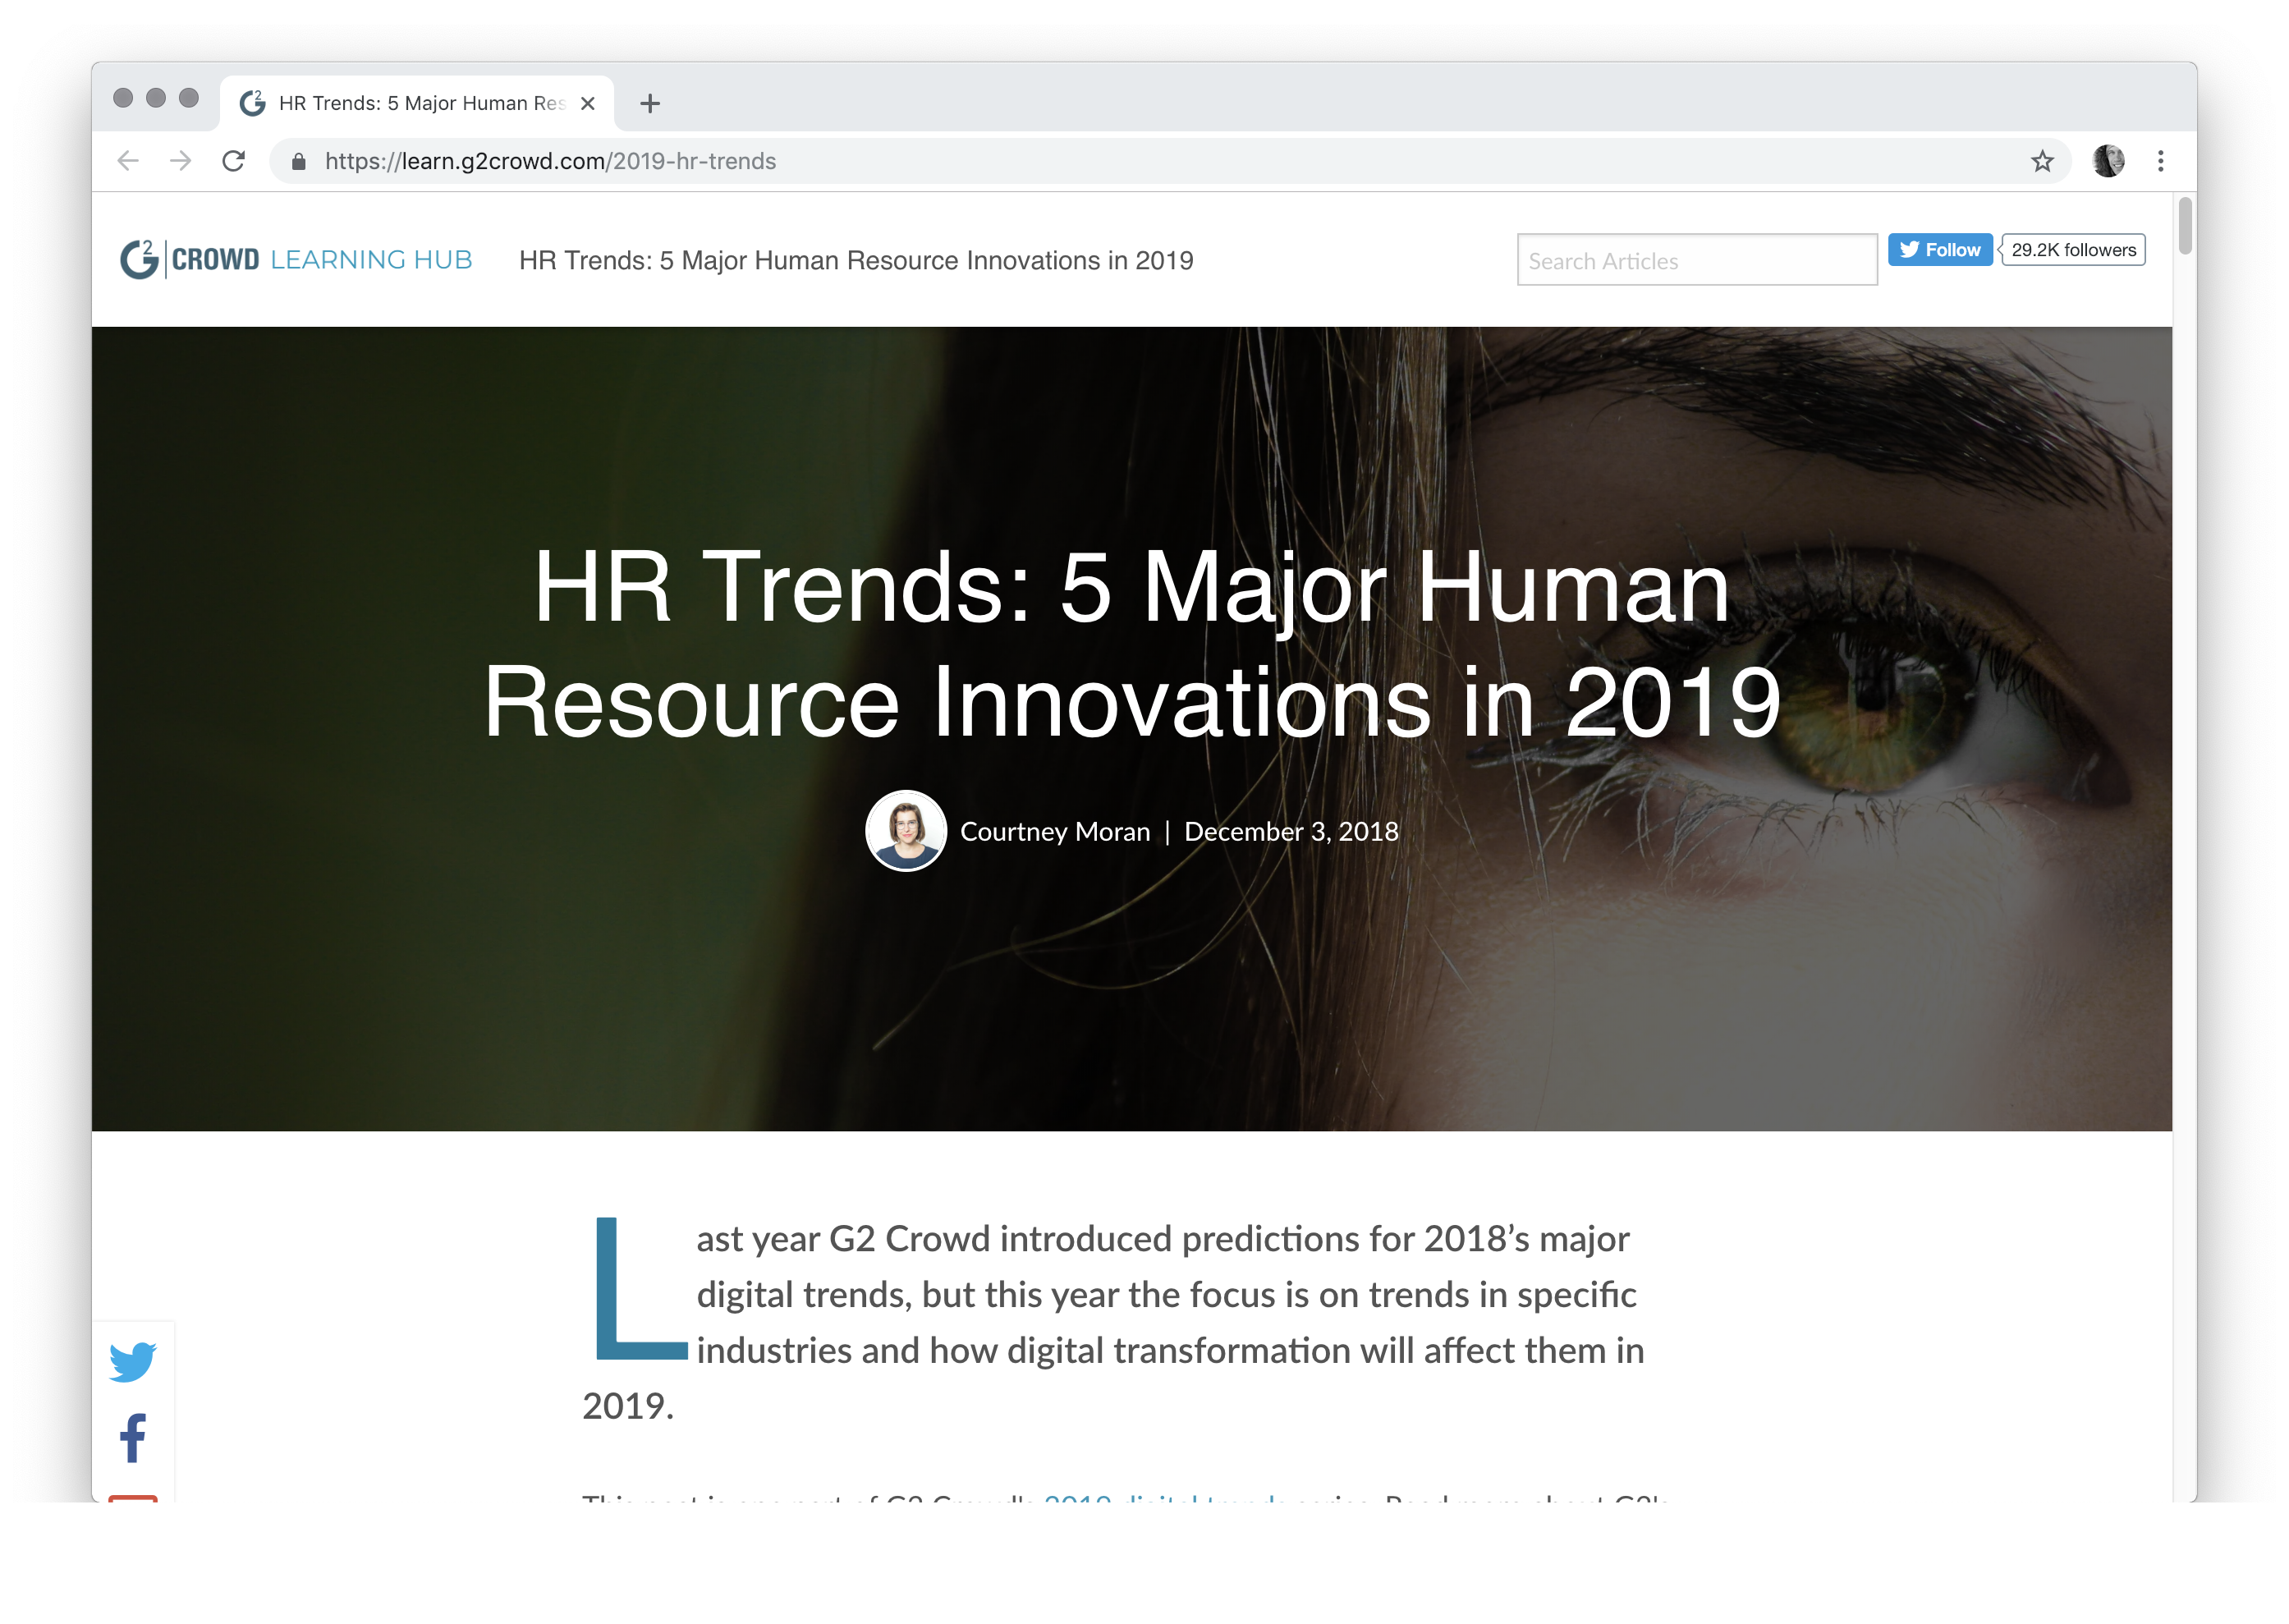 HR Trends: 5 Major Human Resource Innovations in 2019 cakehr